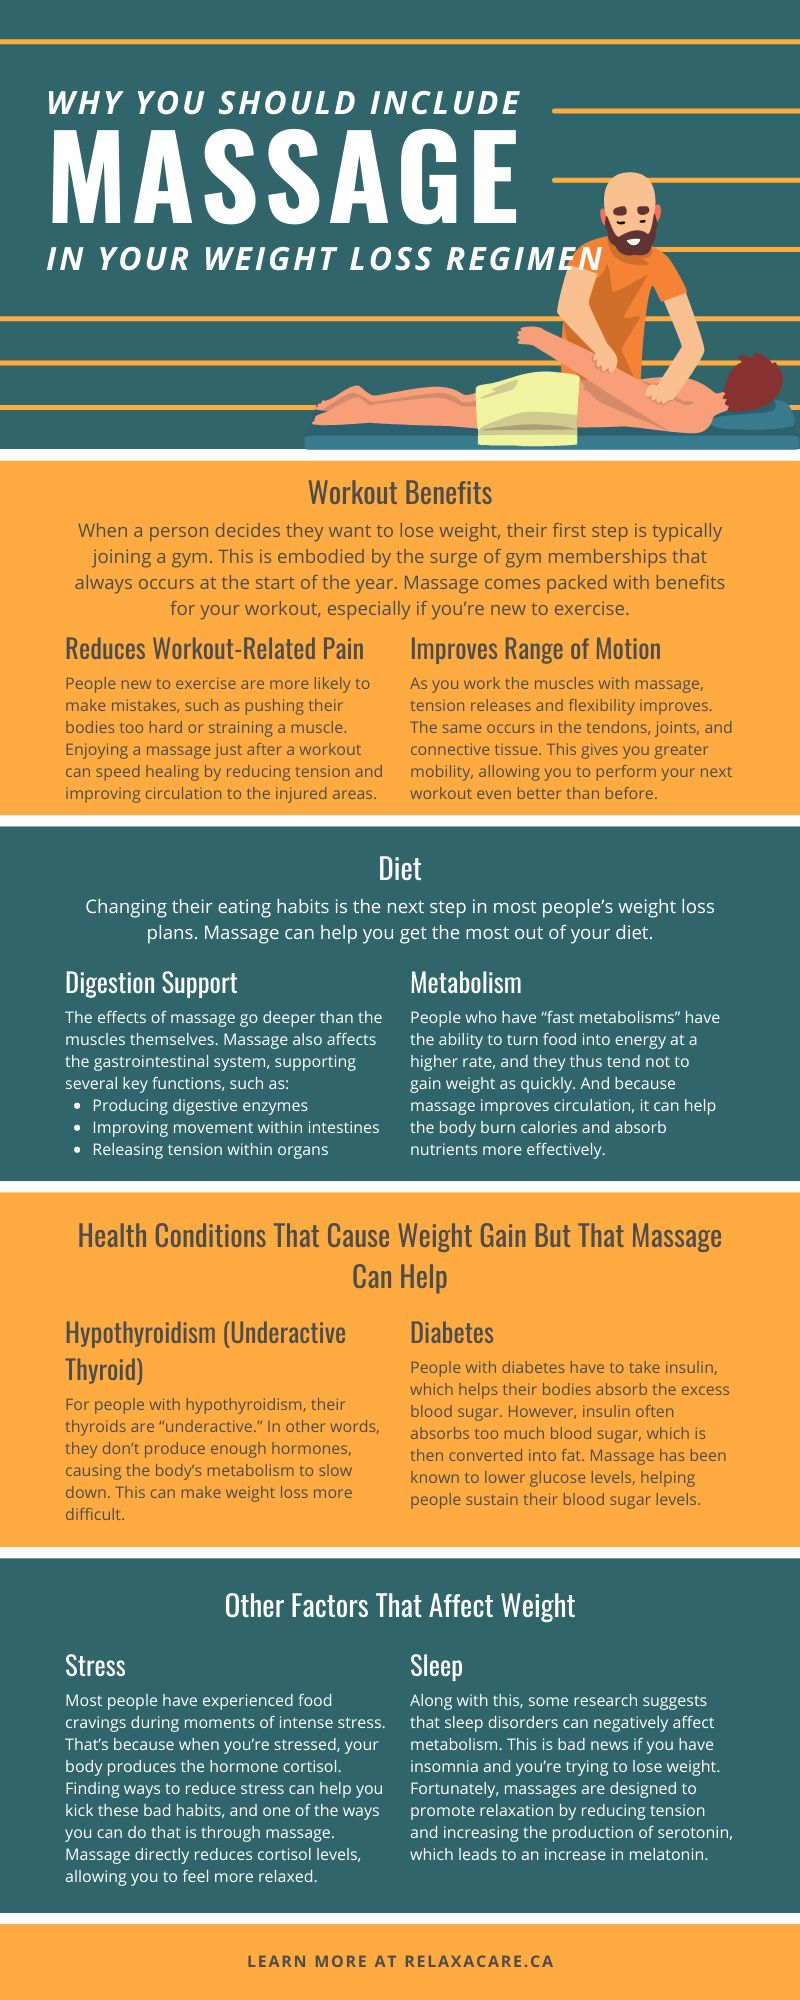 Why You Should Include Massage in Your Weight Loss Regimen